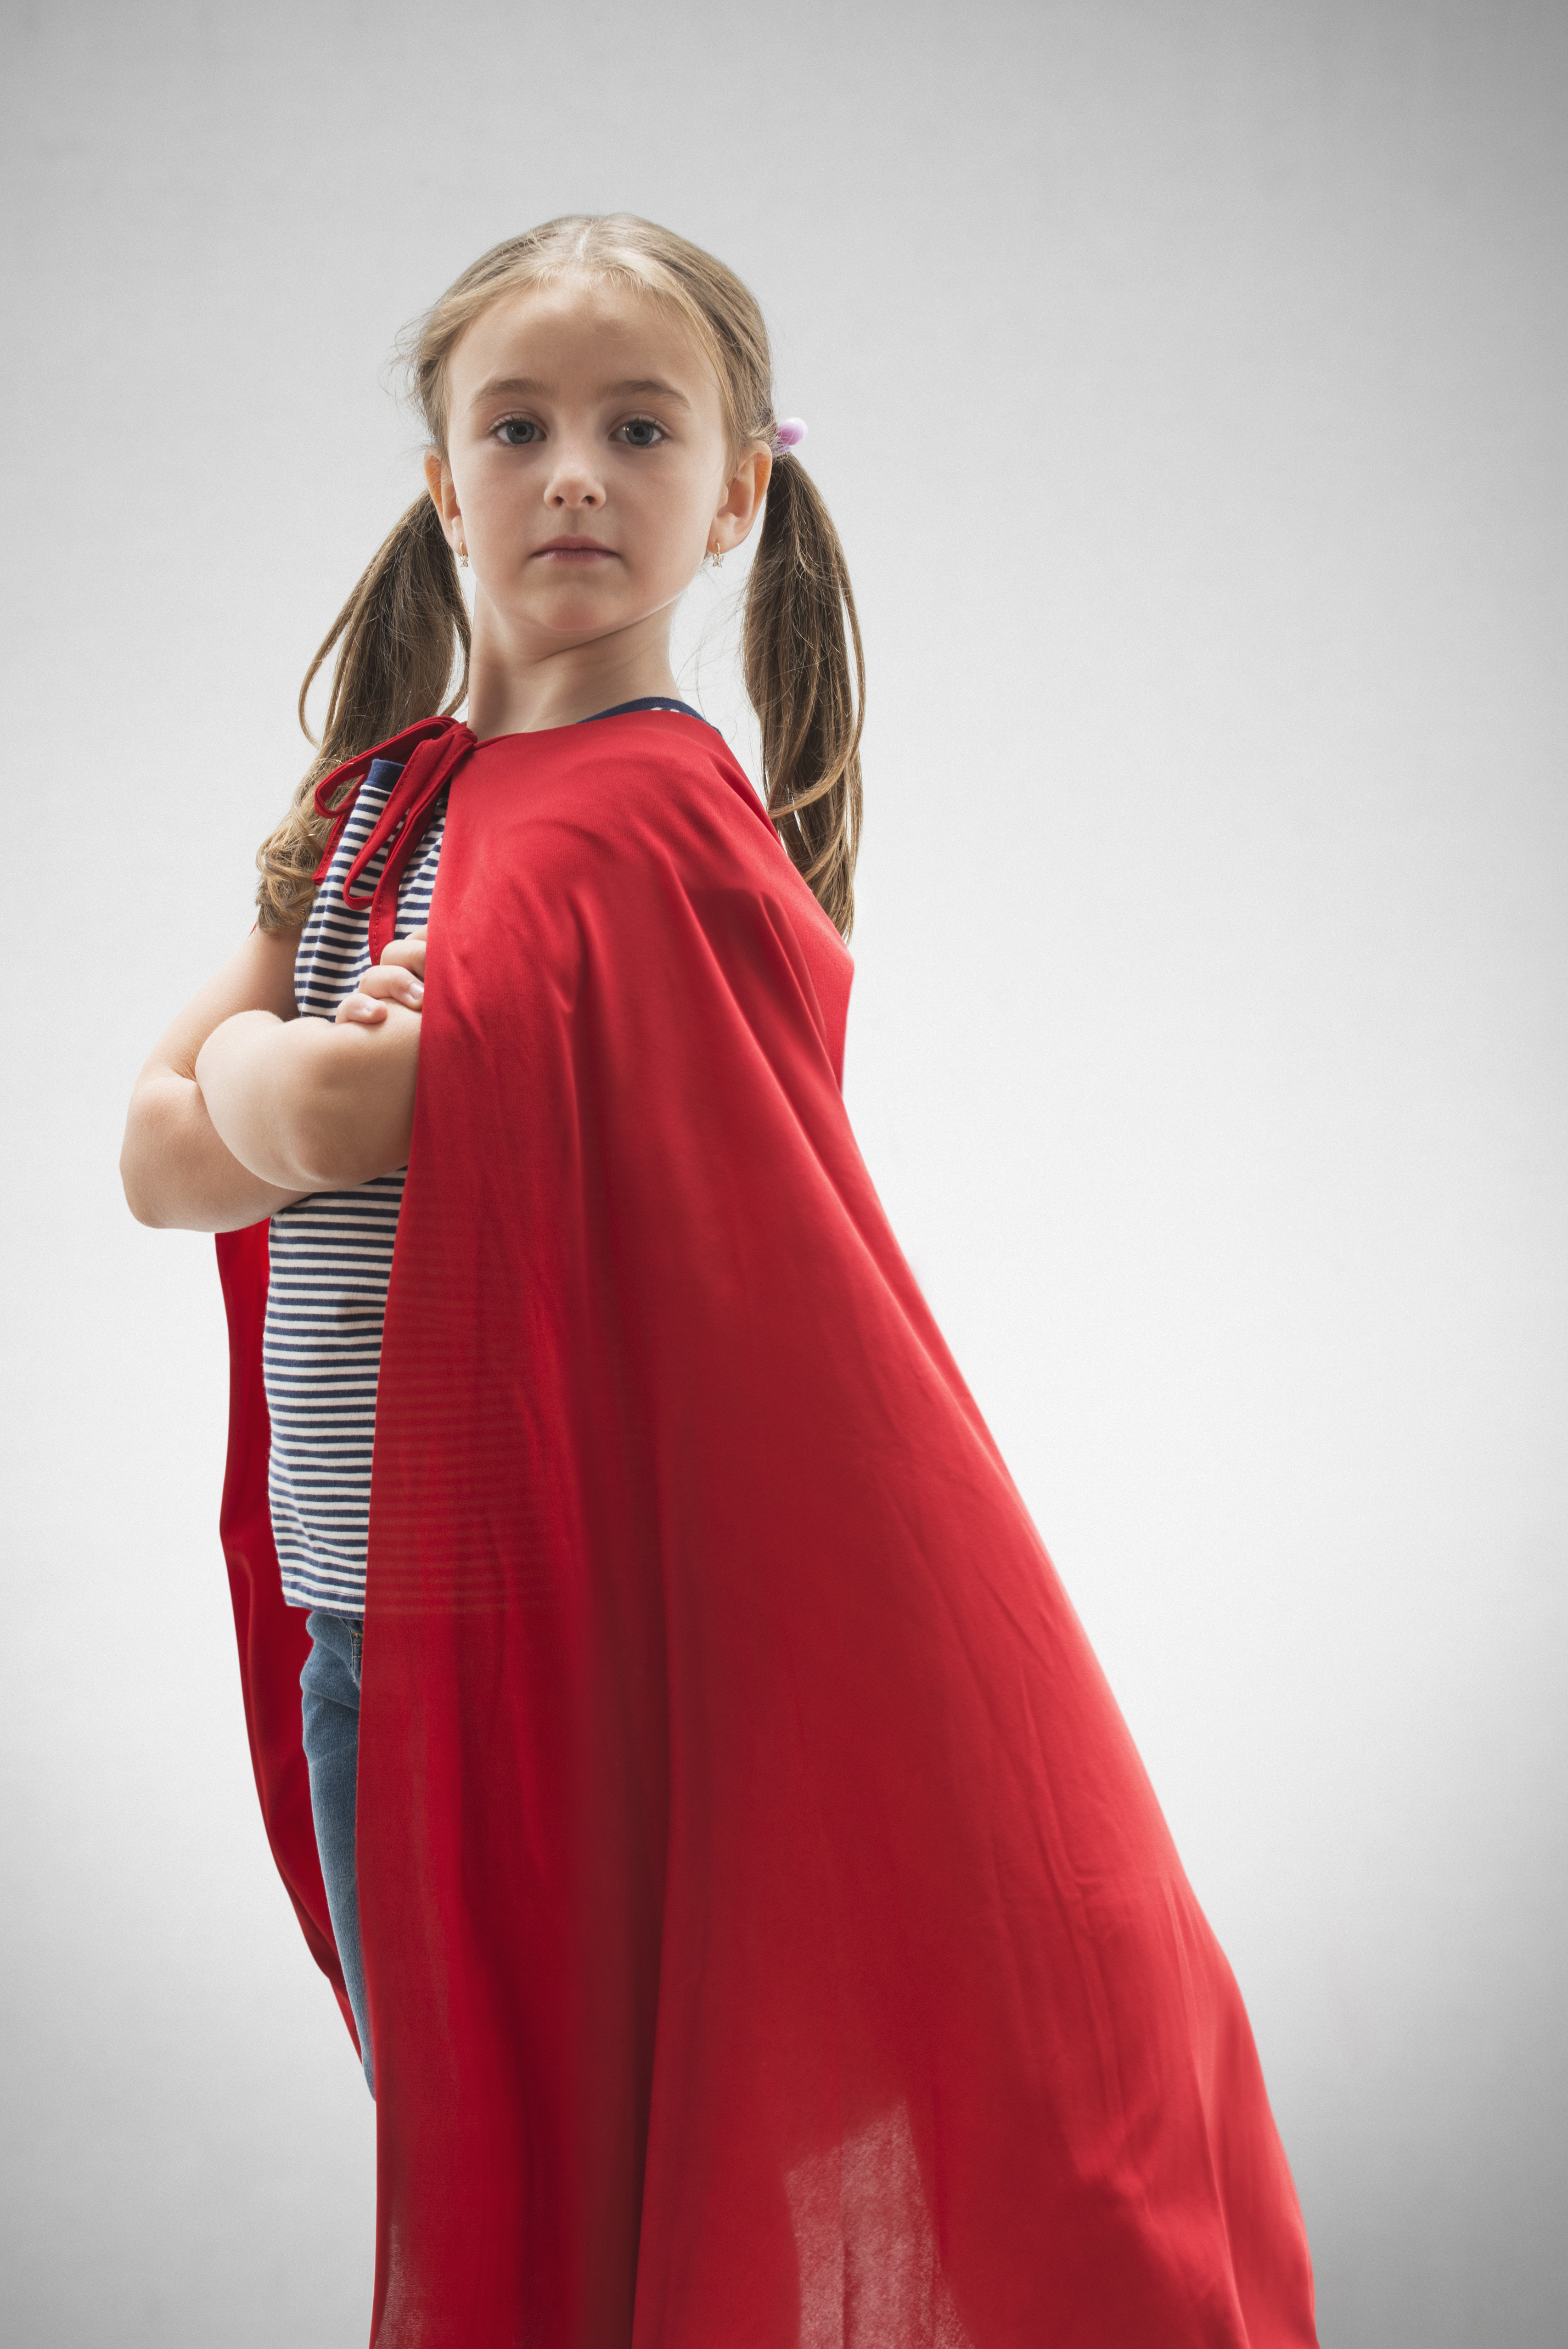 Caucasian girl wearing superhero cape